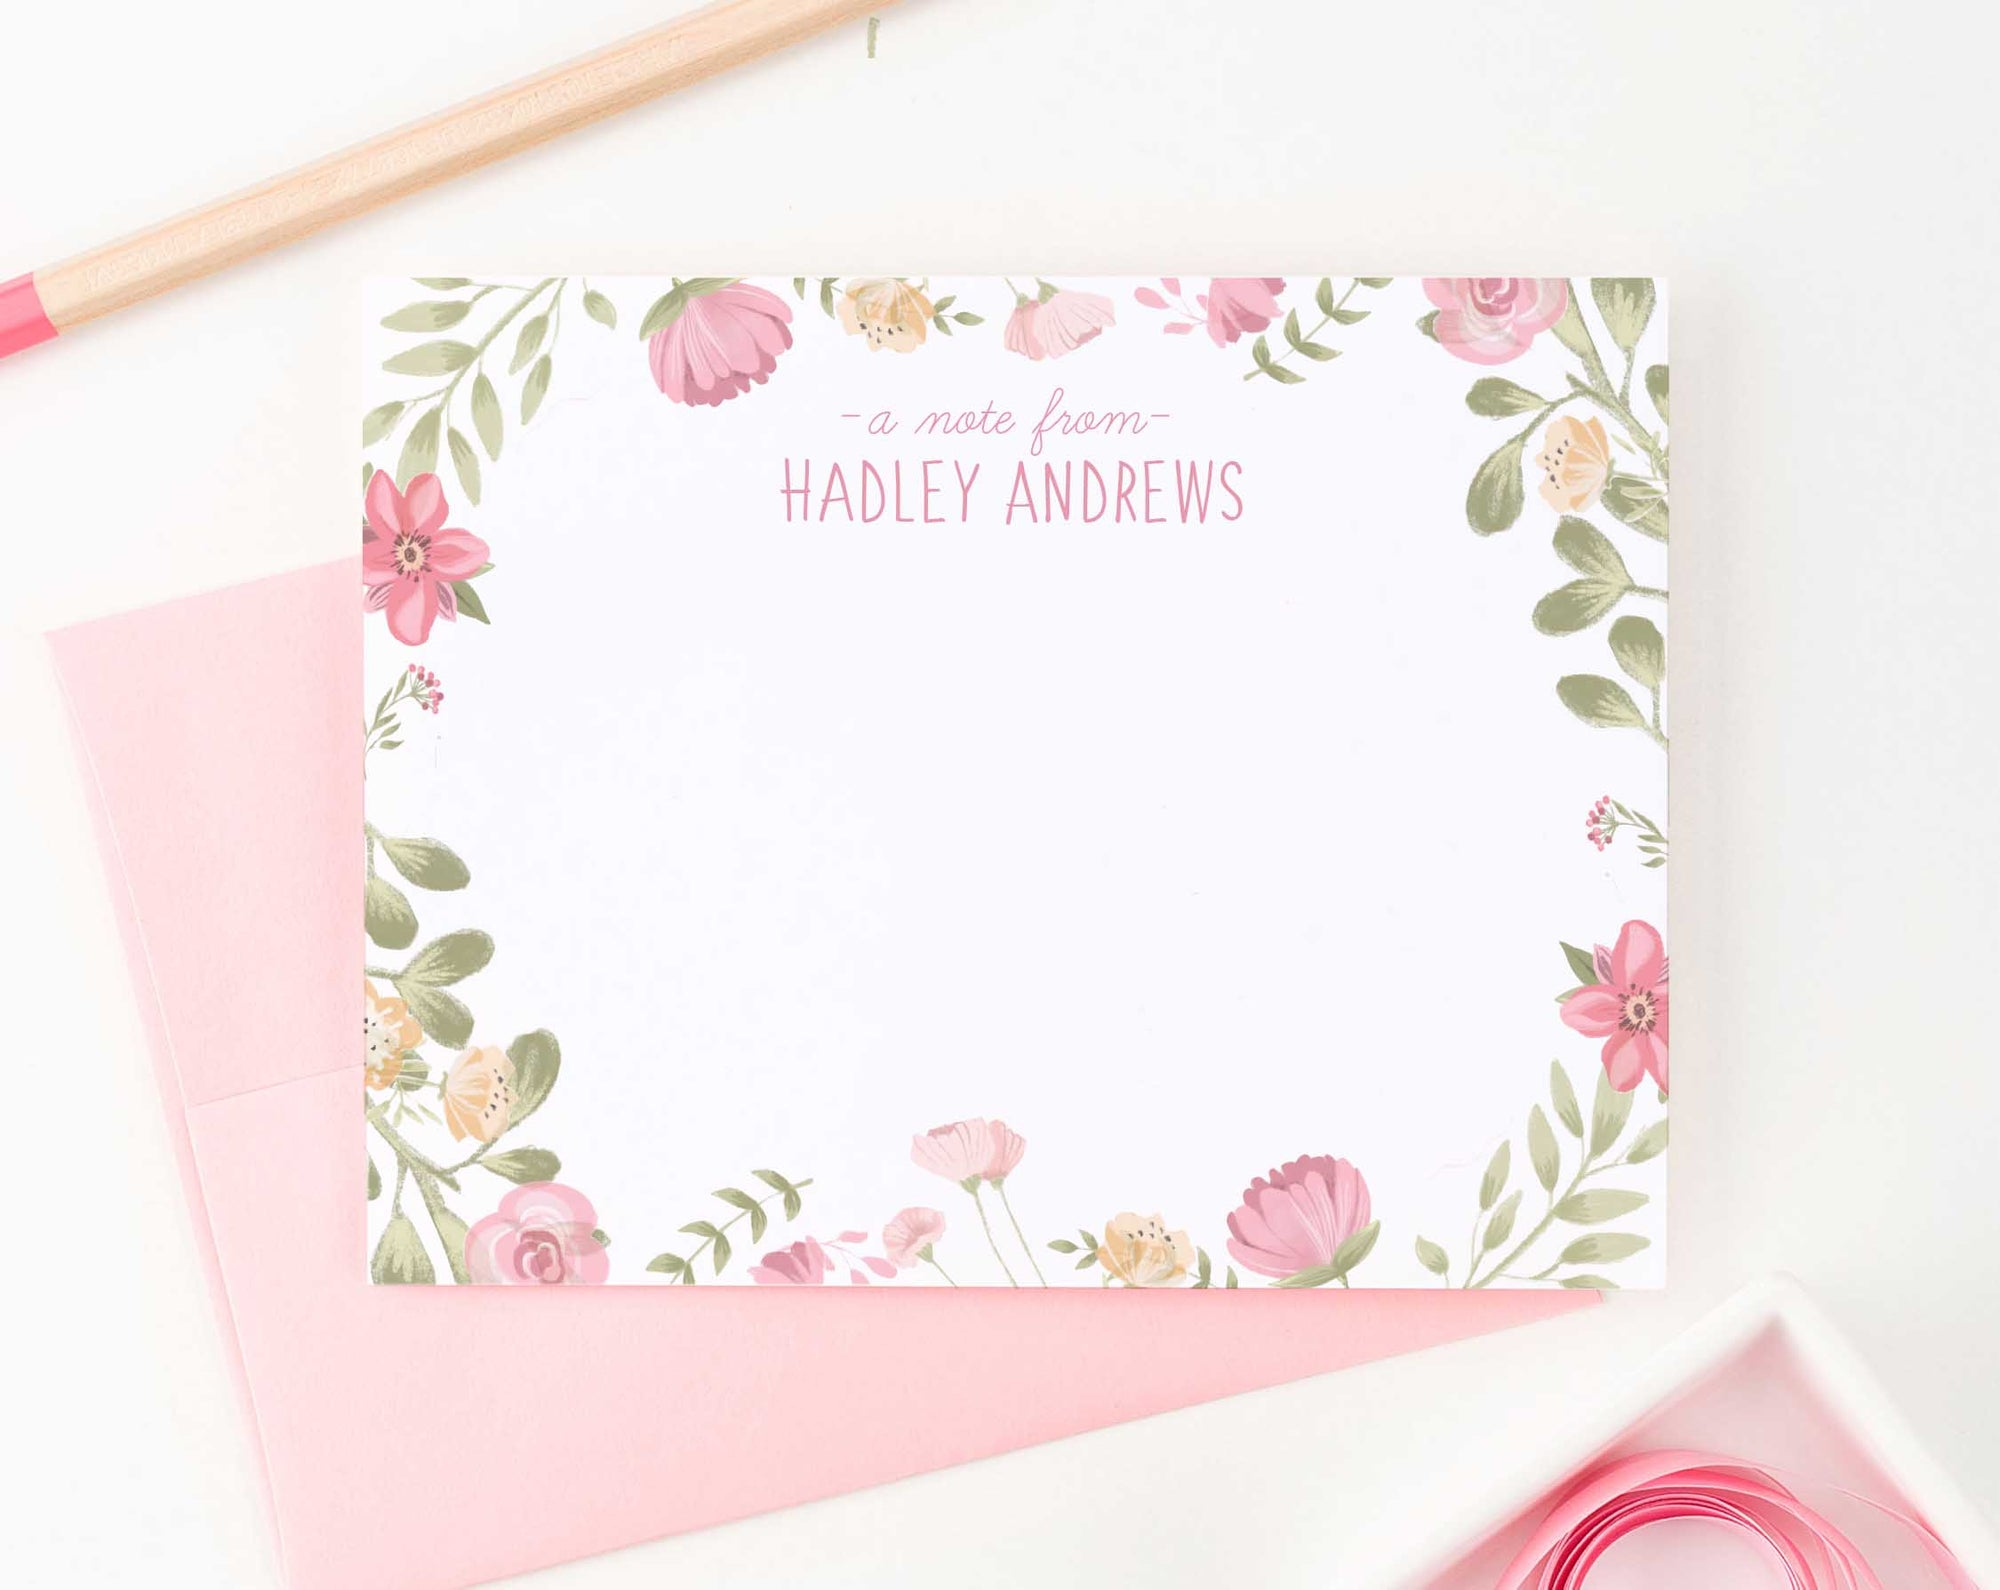 KS133 watercolor floral personalized stationery set a note from girls flowers cute sweet 2